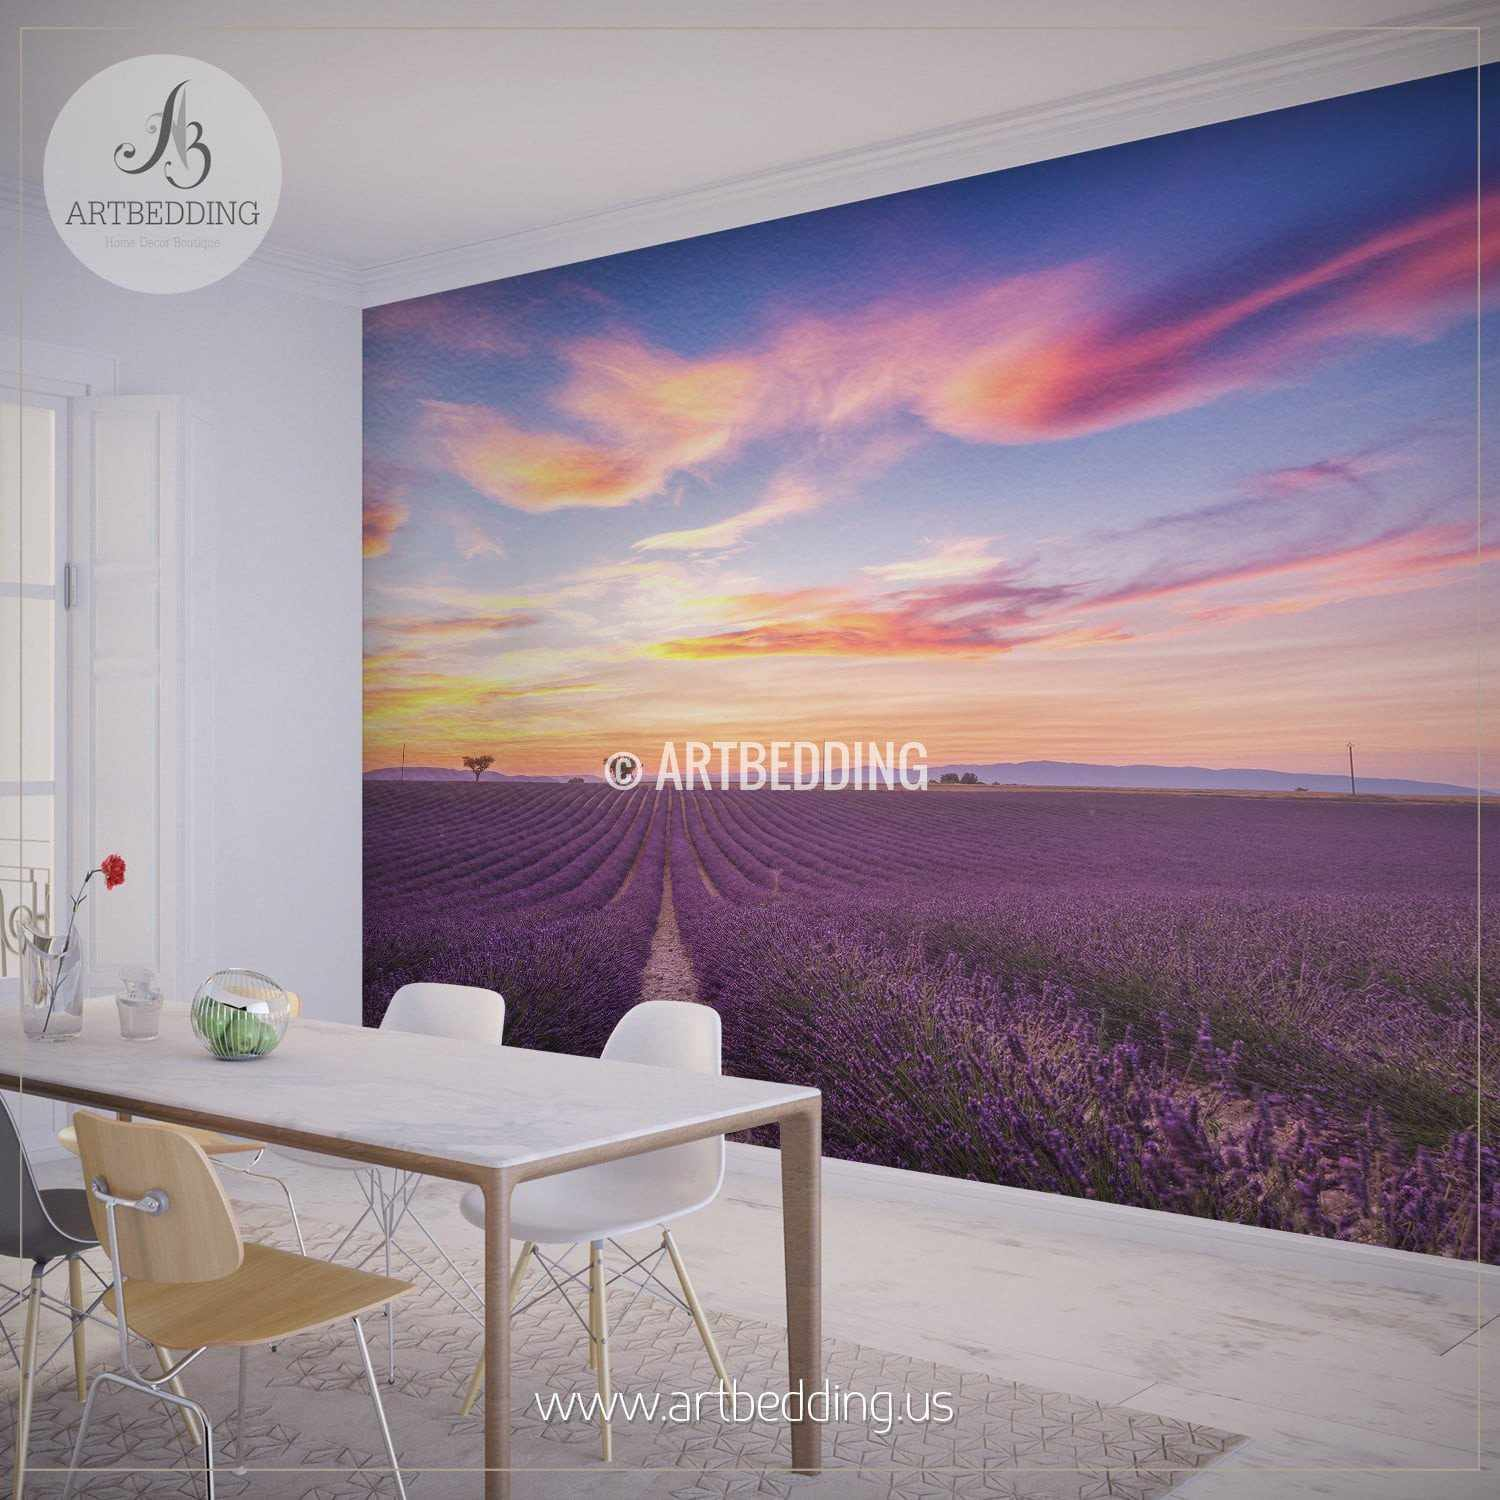 wall murals peel and stick self adhesive vinyl hd print tagged lavender field summer sunset landscape wall mural photo mural self adhesive peel stick